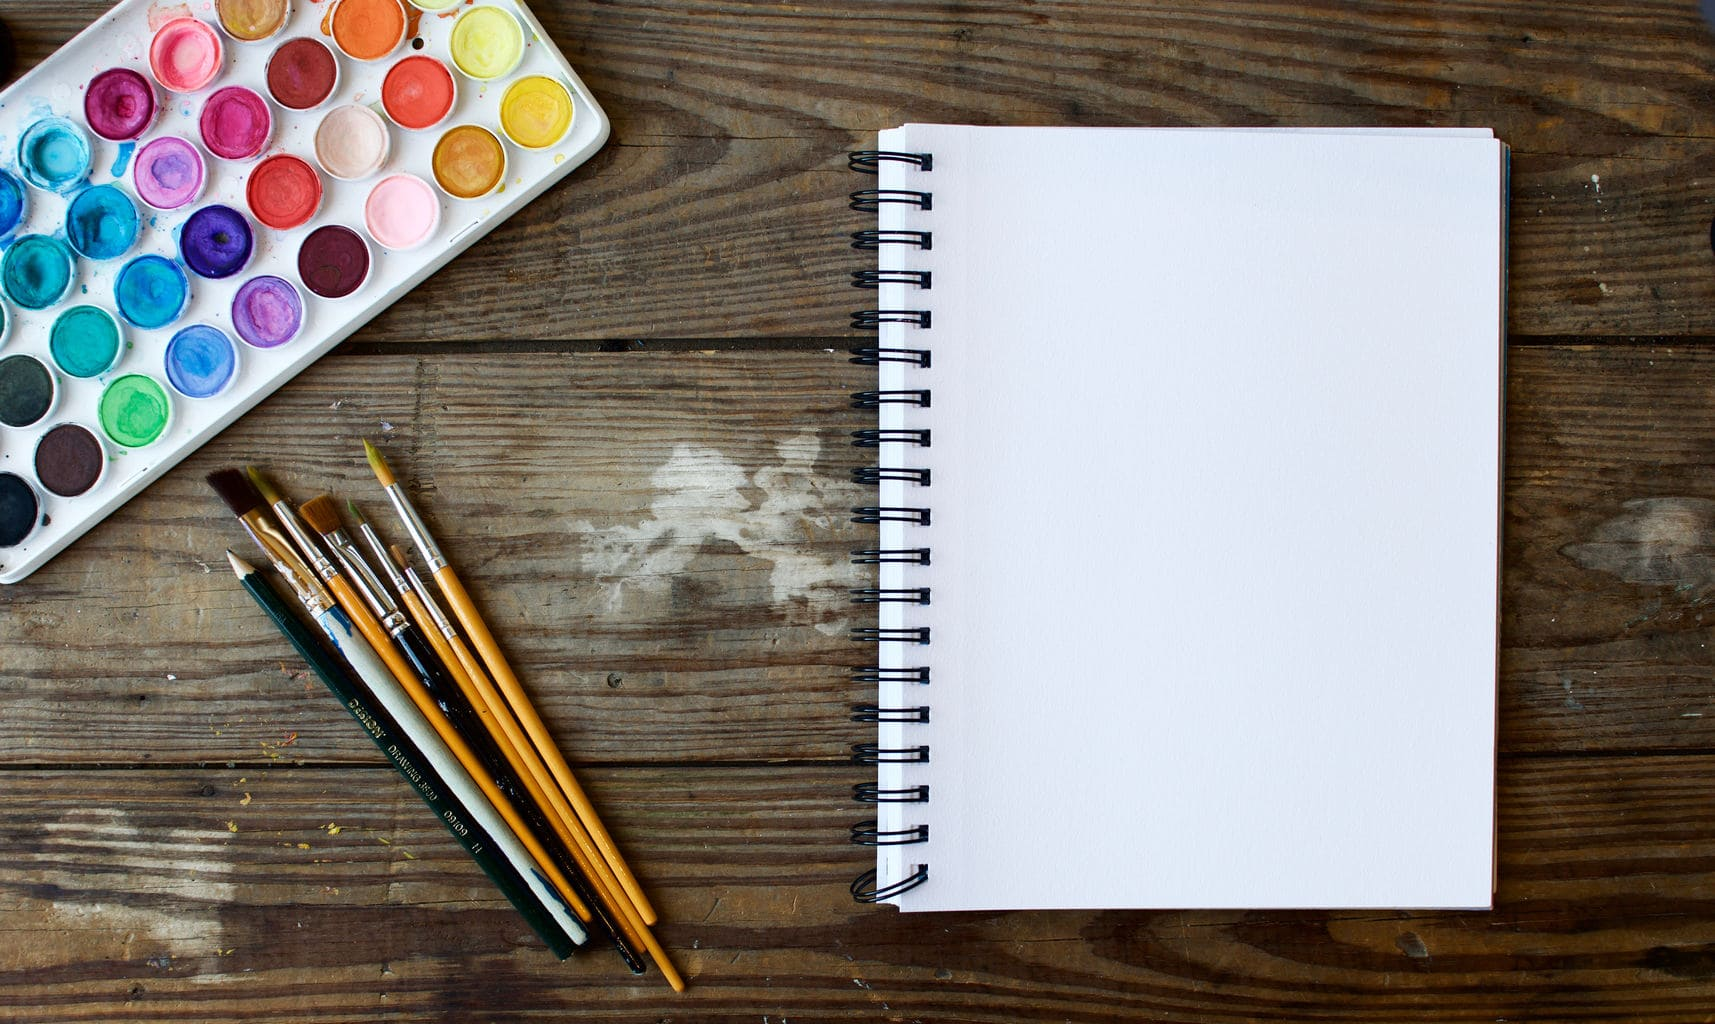 blank-notebook-with-colorful-paint-and-paint-brushes